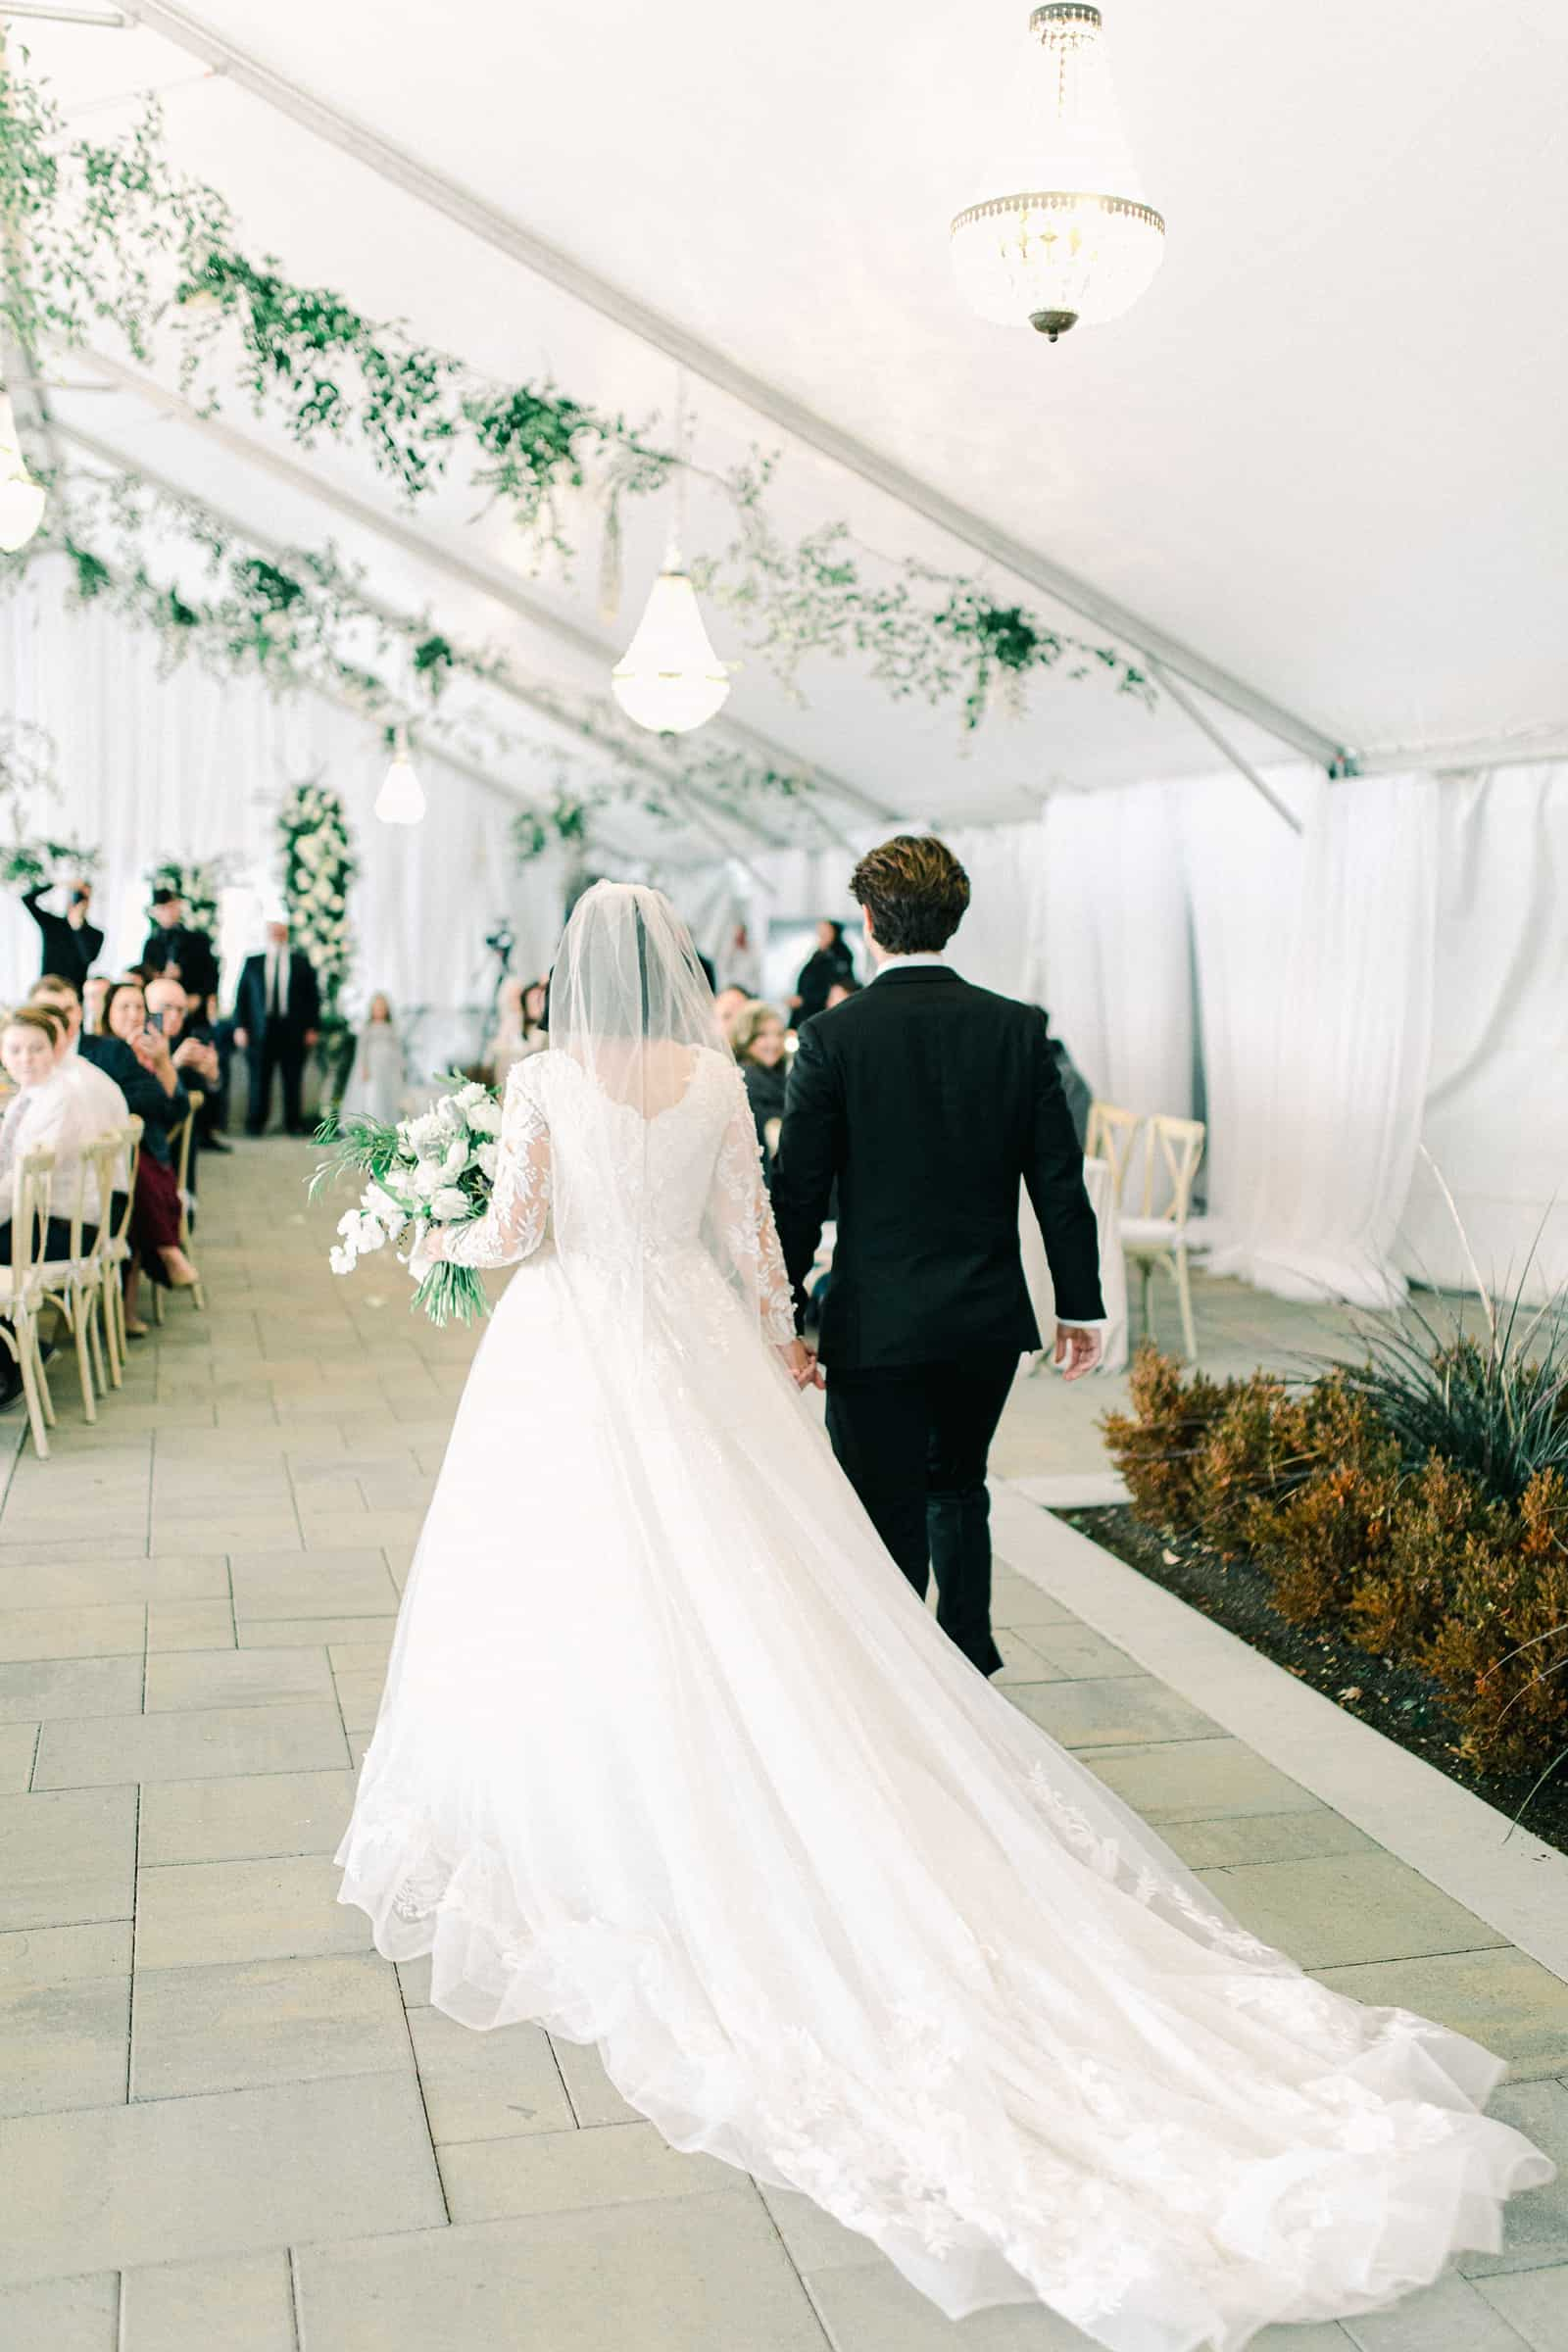 Winter wedding at Willowbridge Estate, bride and groom walk down aisle, long train